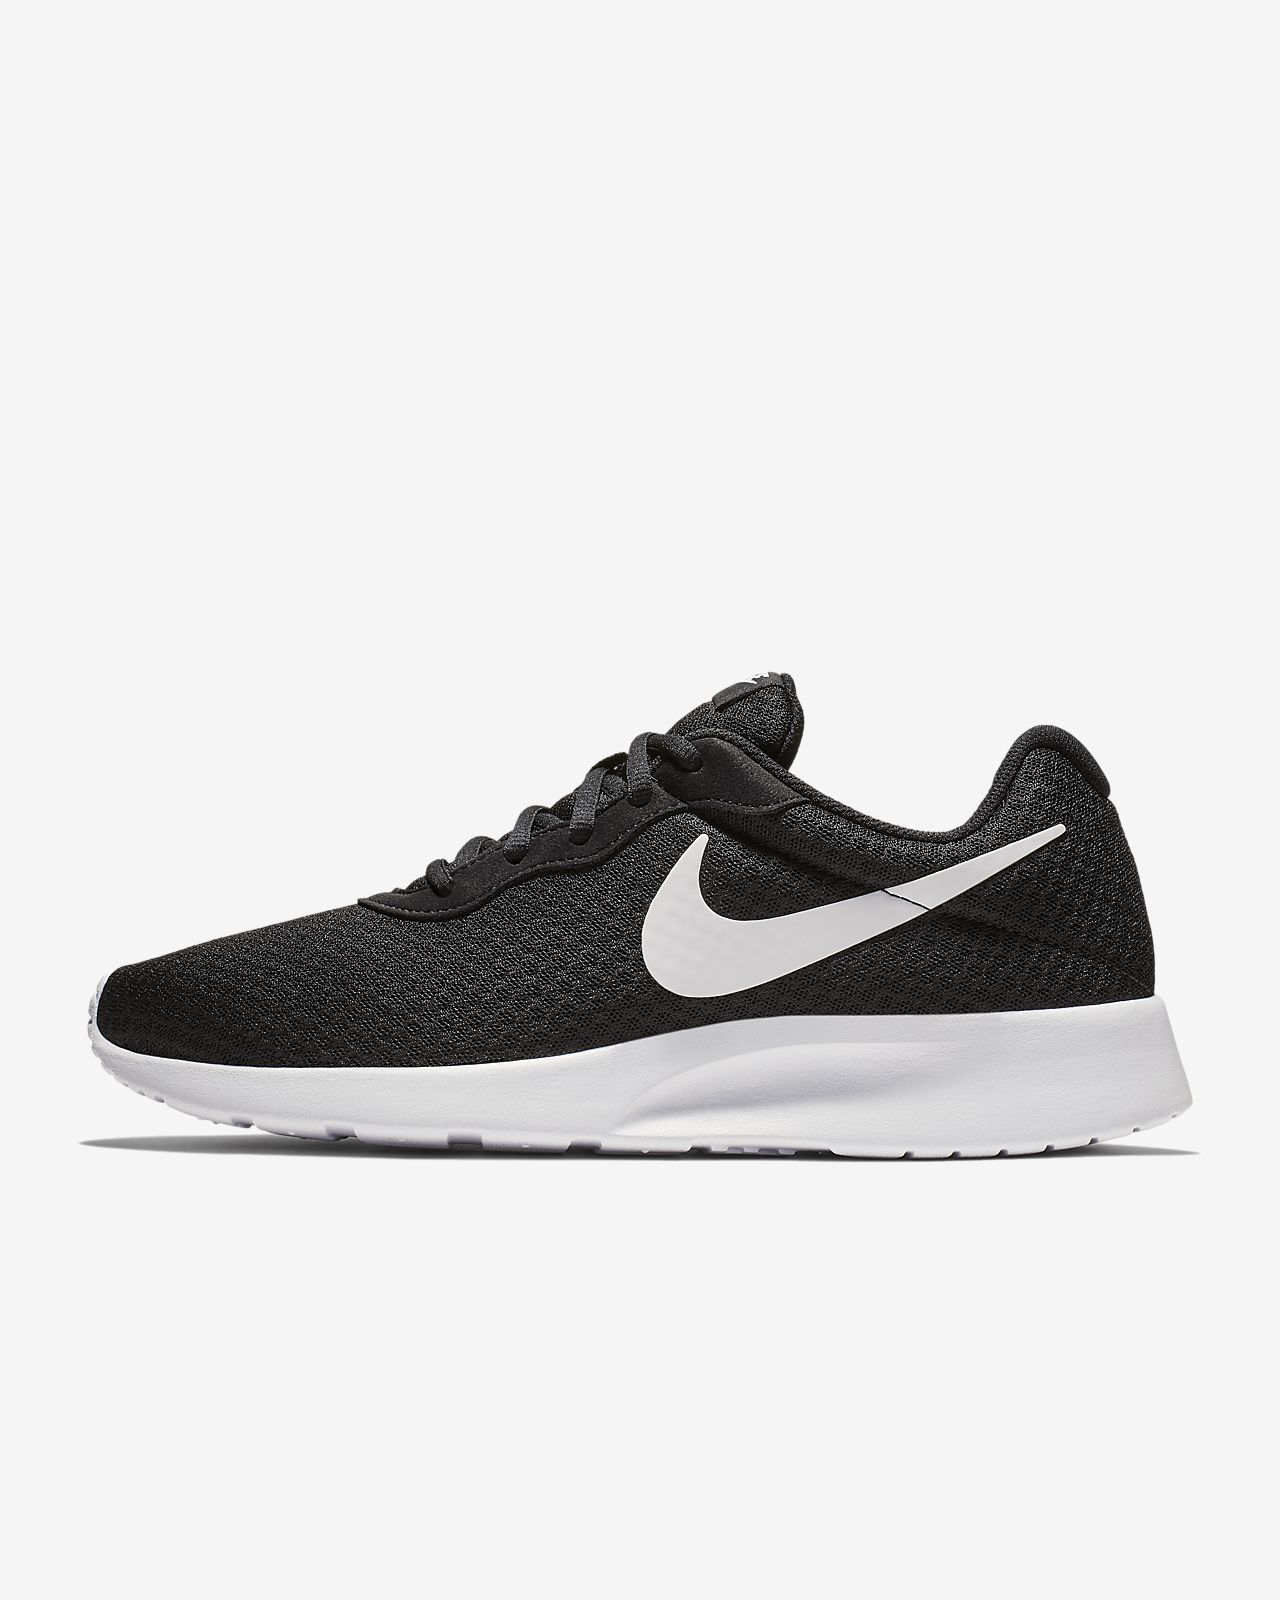 info for 1a279 8265a Low Resolution Nike Tanjun Womens Shoe Nike Tanjun Womens Shoe